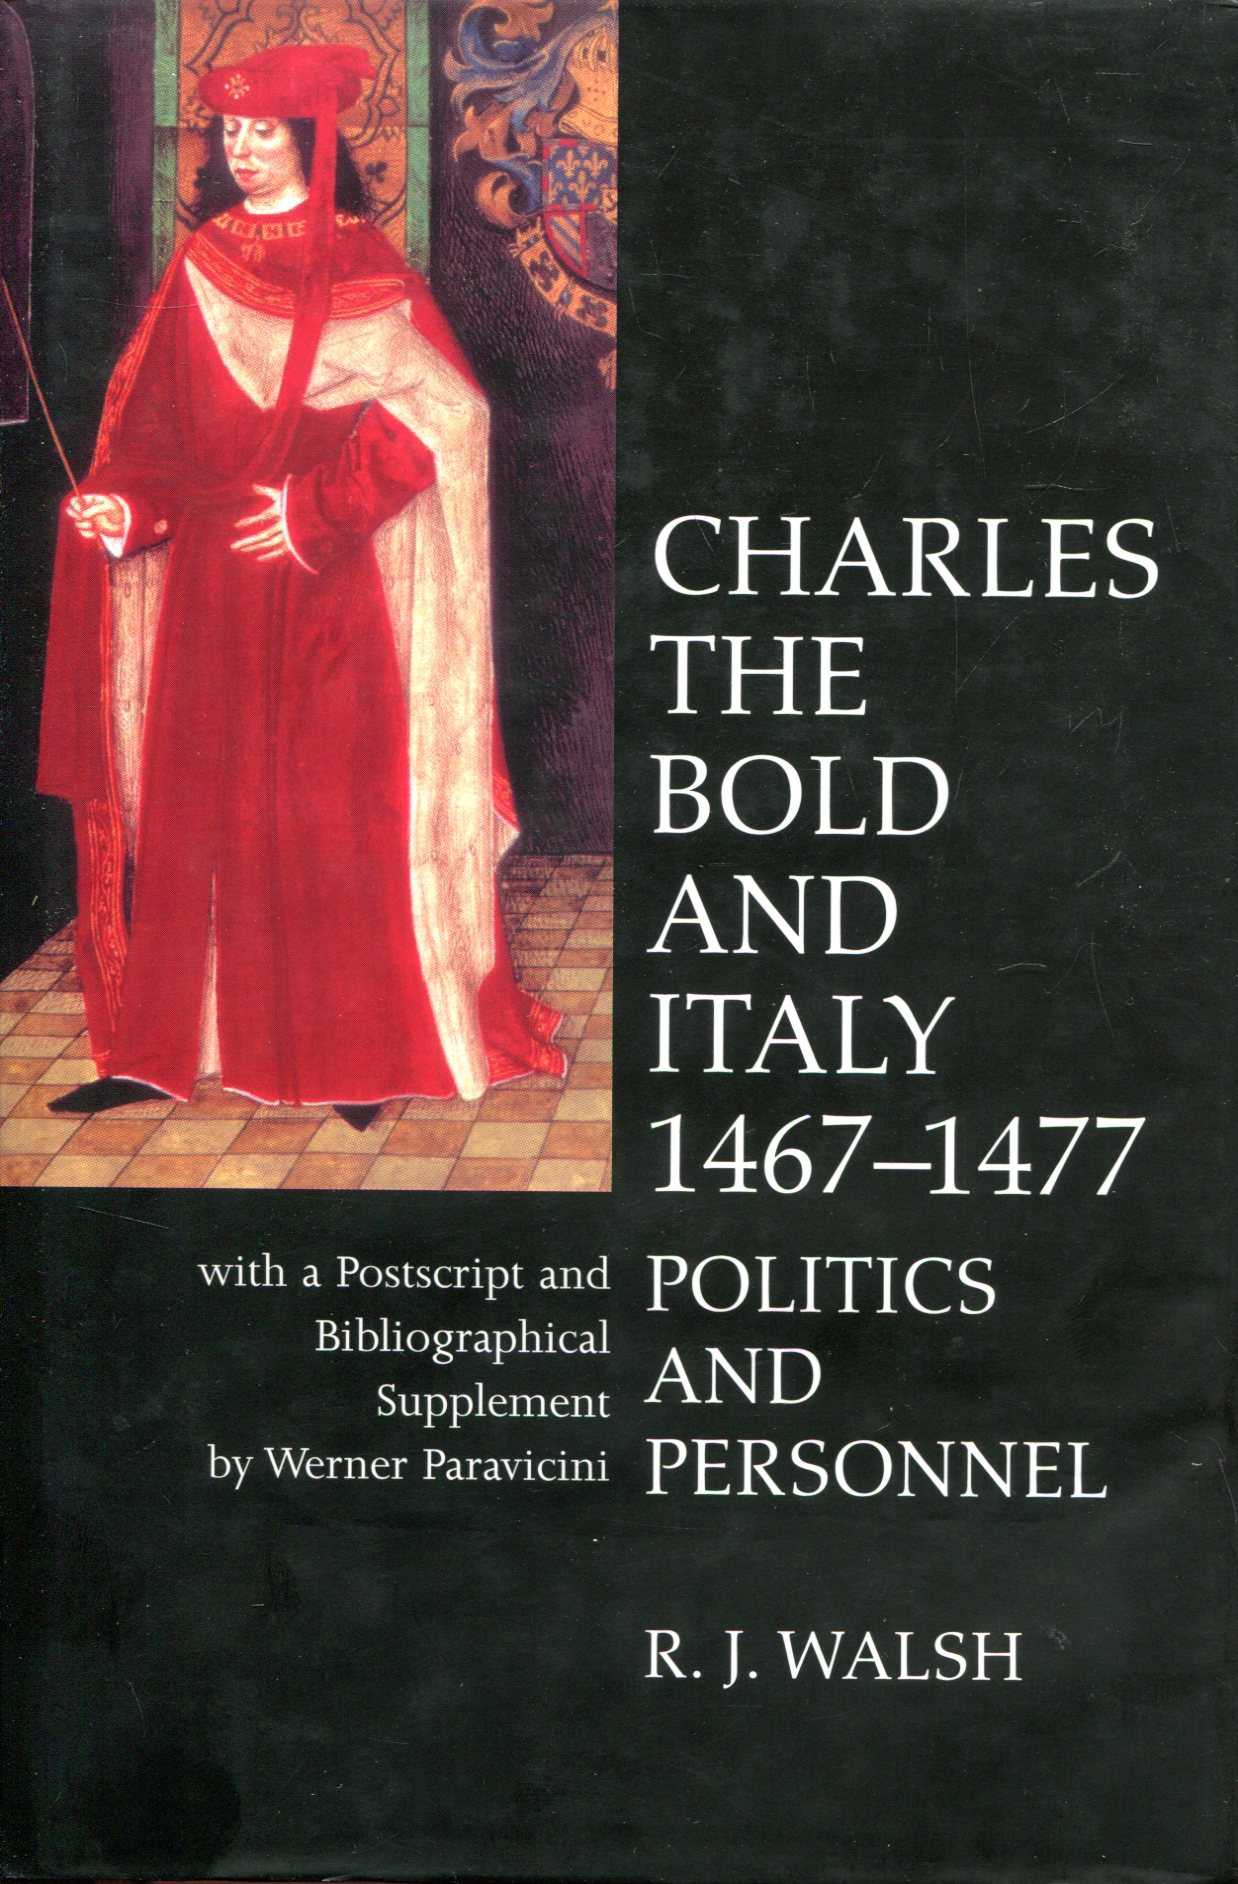 Image for Charles the Bold and Italy 1467-1477: Politics and Personnel